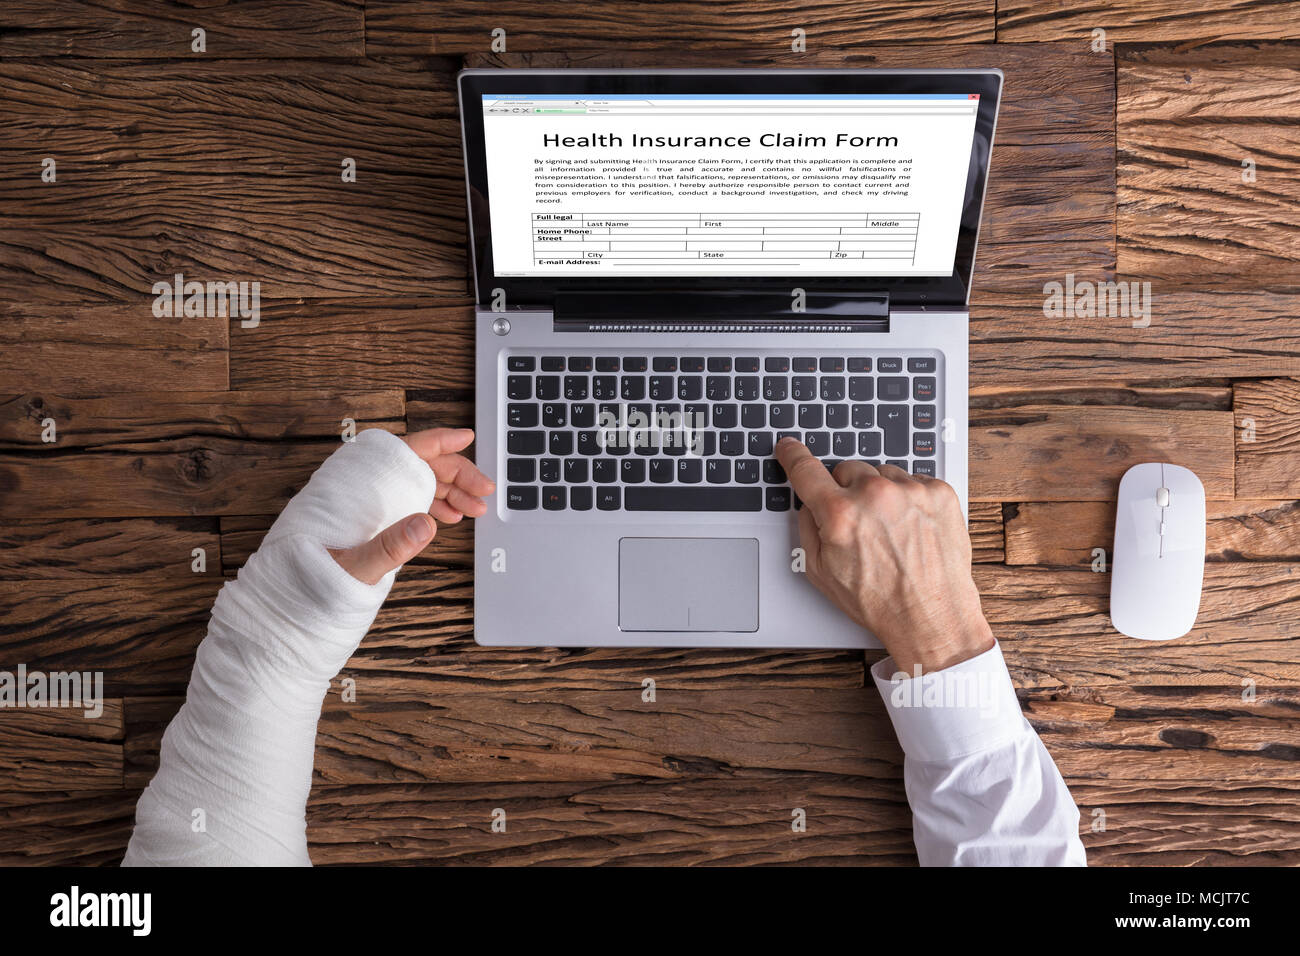 High Angle View Of A Businessperson With Hand Injury Filling Health Insurance Claim Form - Stock Image